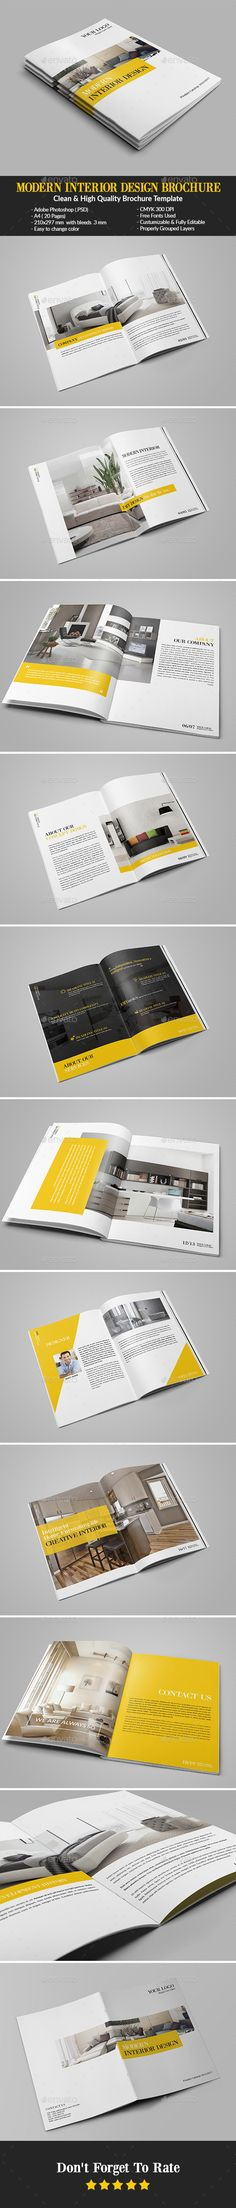 Modern Interior Design Brochure / Catalog Template PSD. Download here: http://graphicriver.net/item/modern-interior-design-brochurecatalog/14865053?ref=ksioks